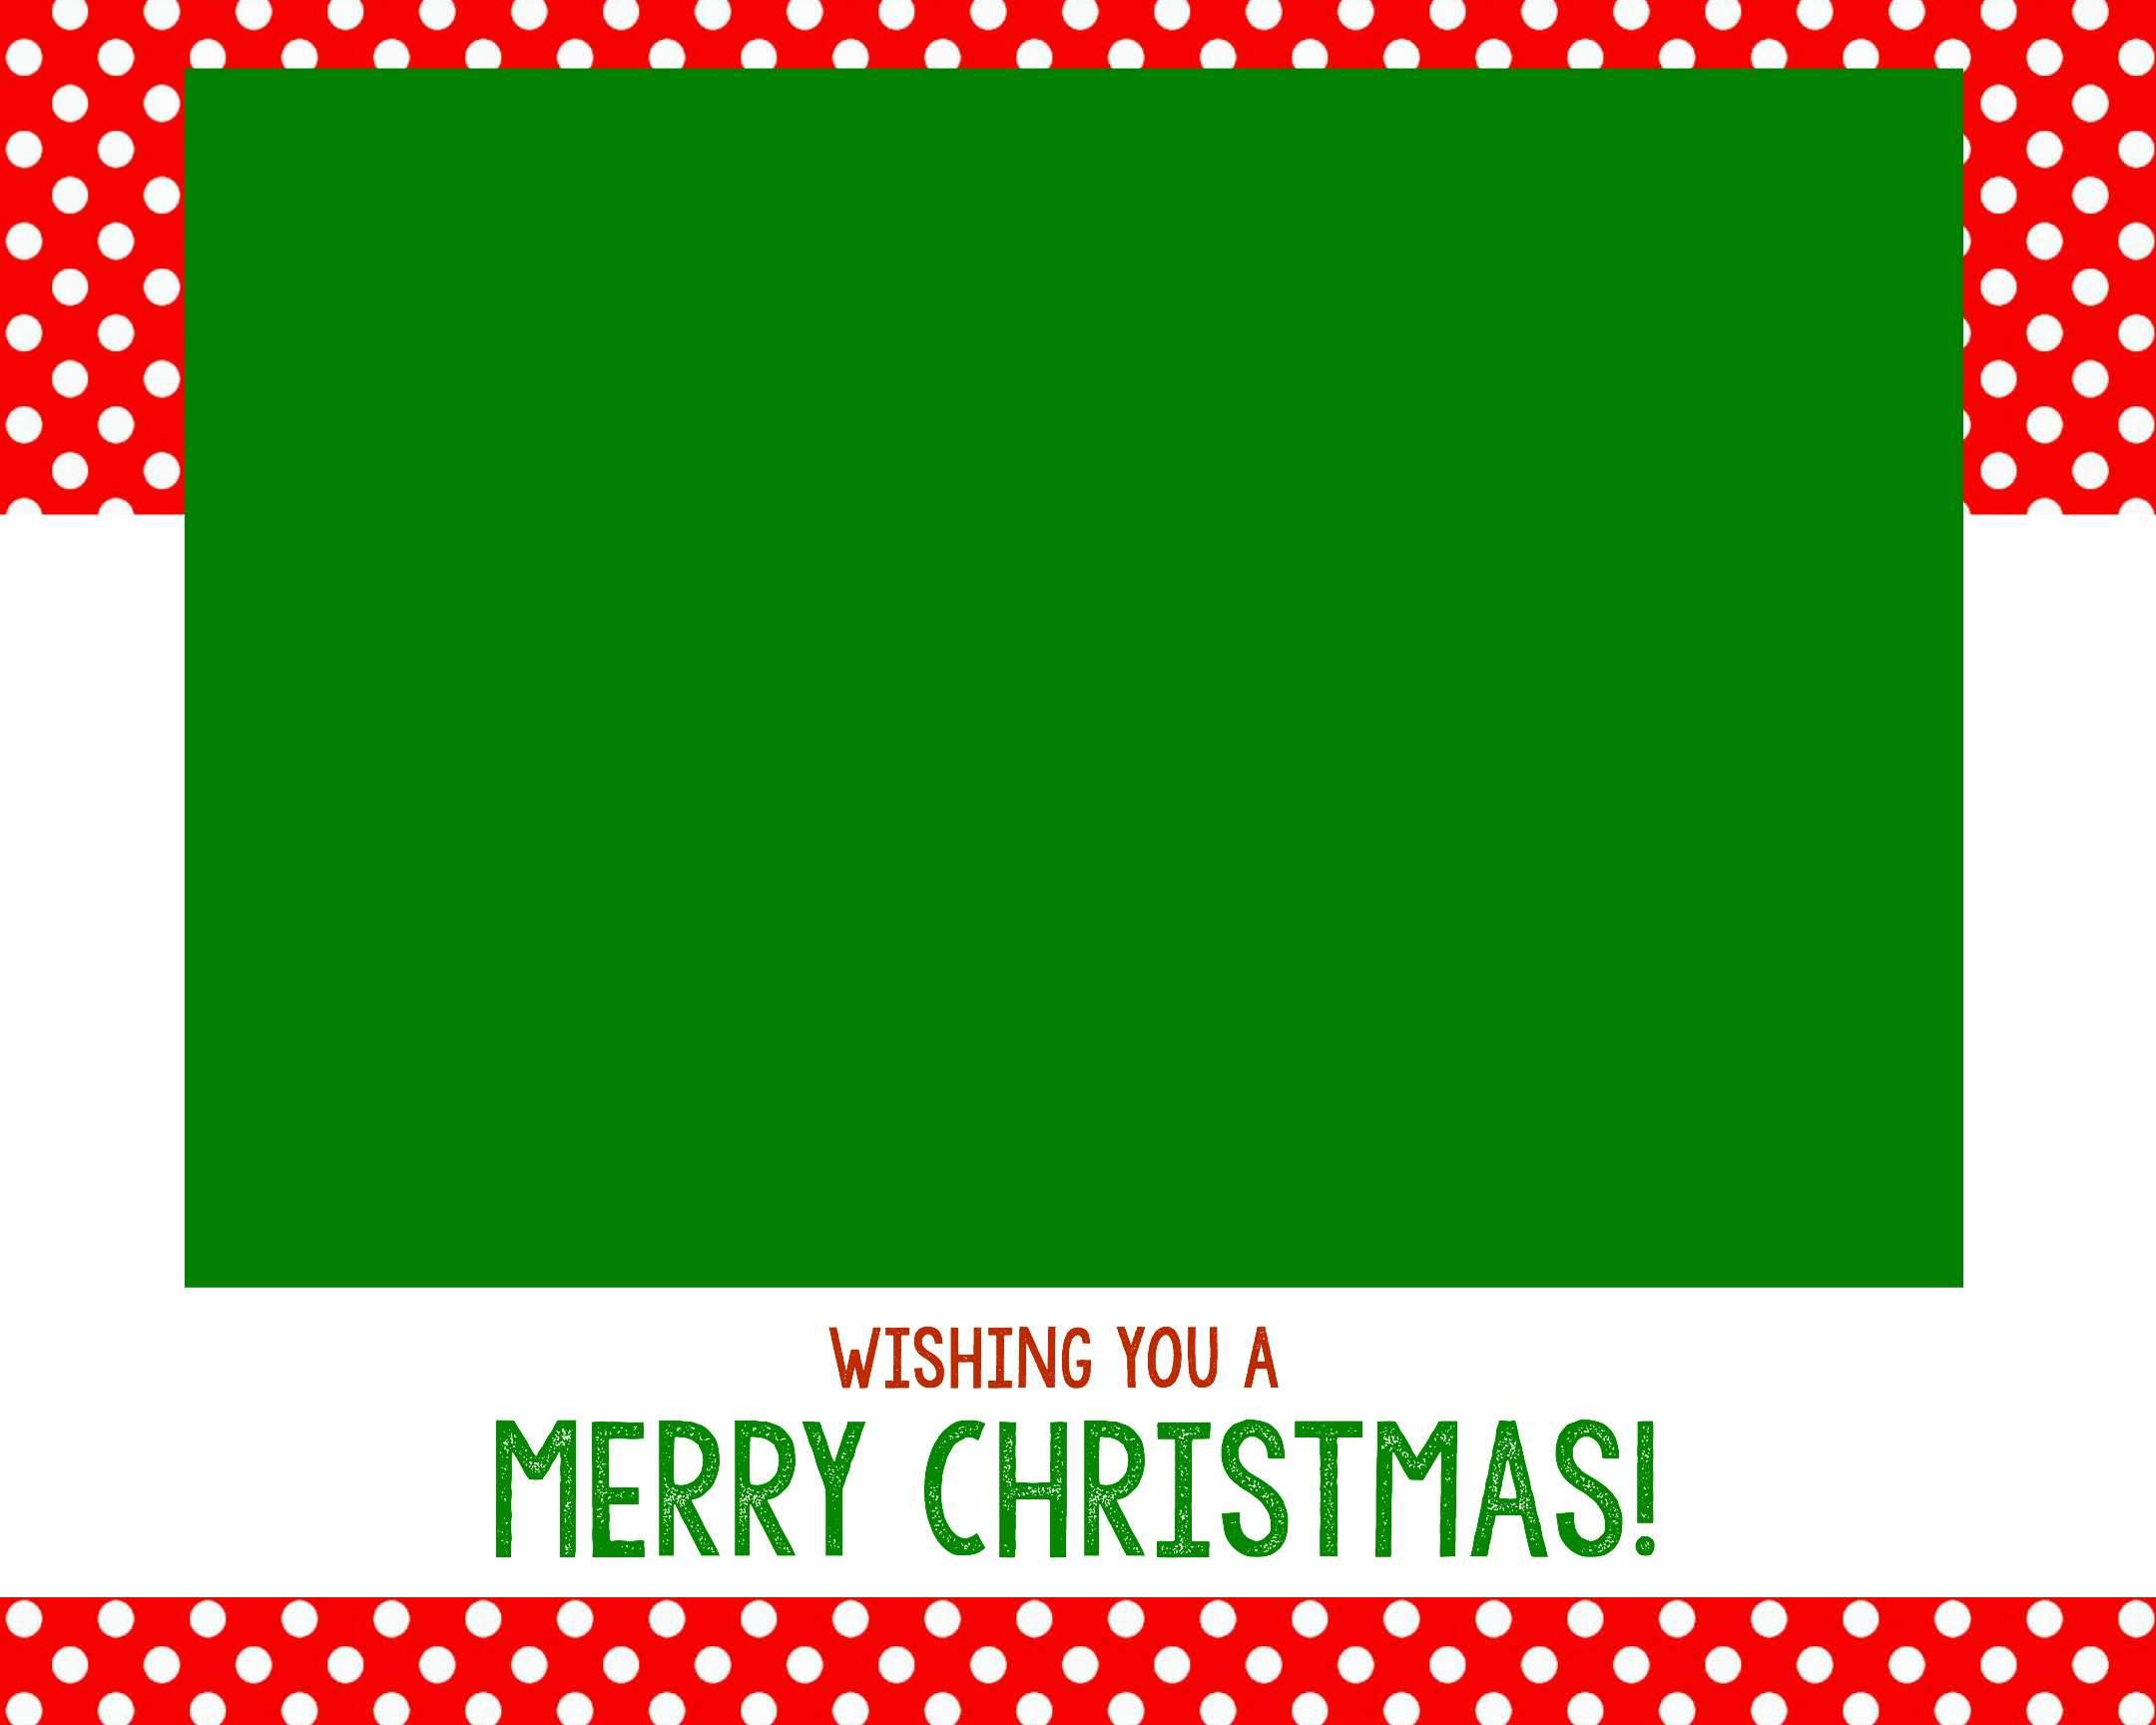 98 How To Create Christmas Card Templates With Photos Free With Stunning Design for Christmas Card Templates With Photos Free